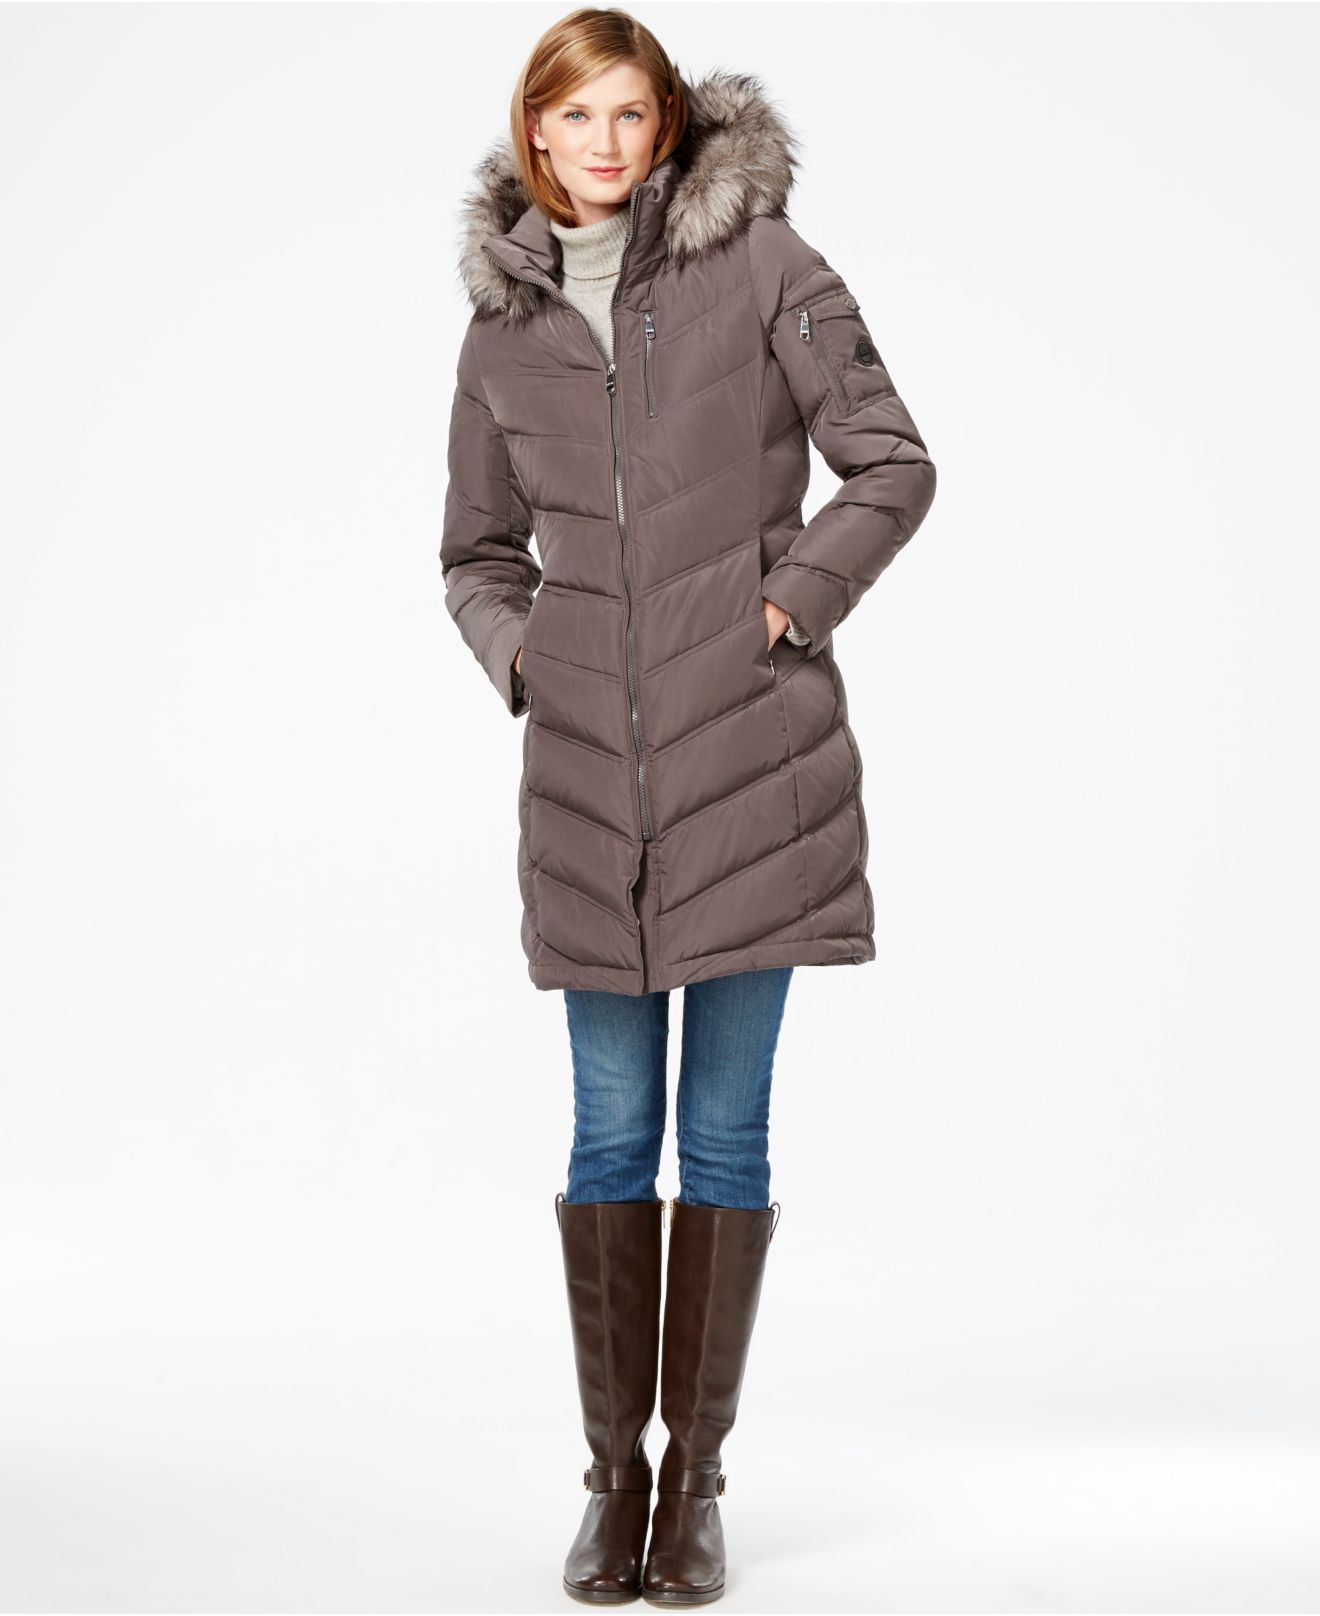 104ce30ad73c Calvin Klein Women S Faux Fur Trim Hooded Maxi Puffer Jacket ...